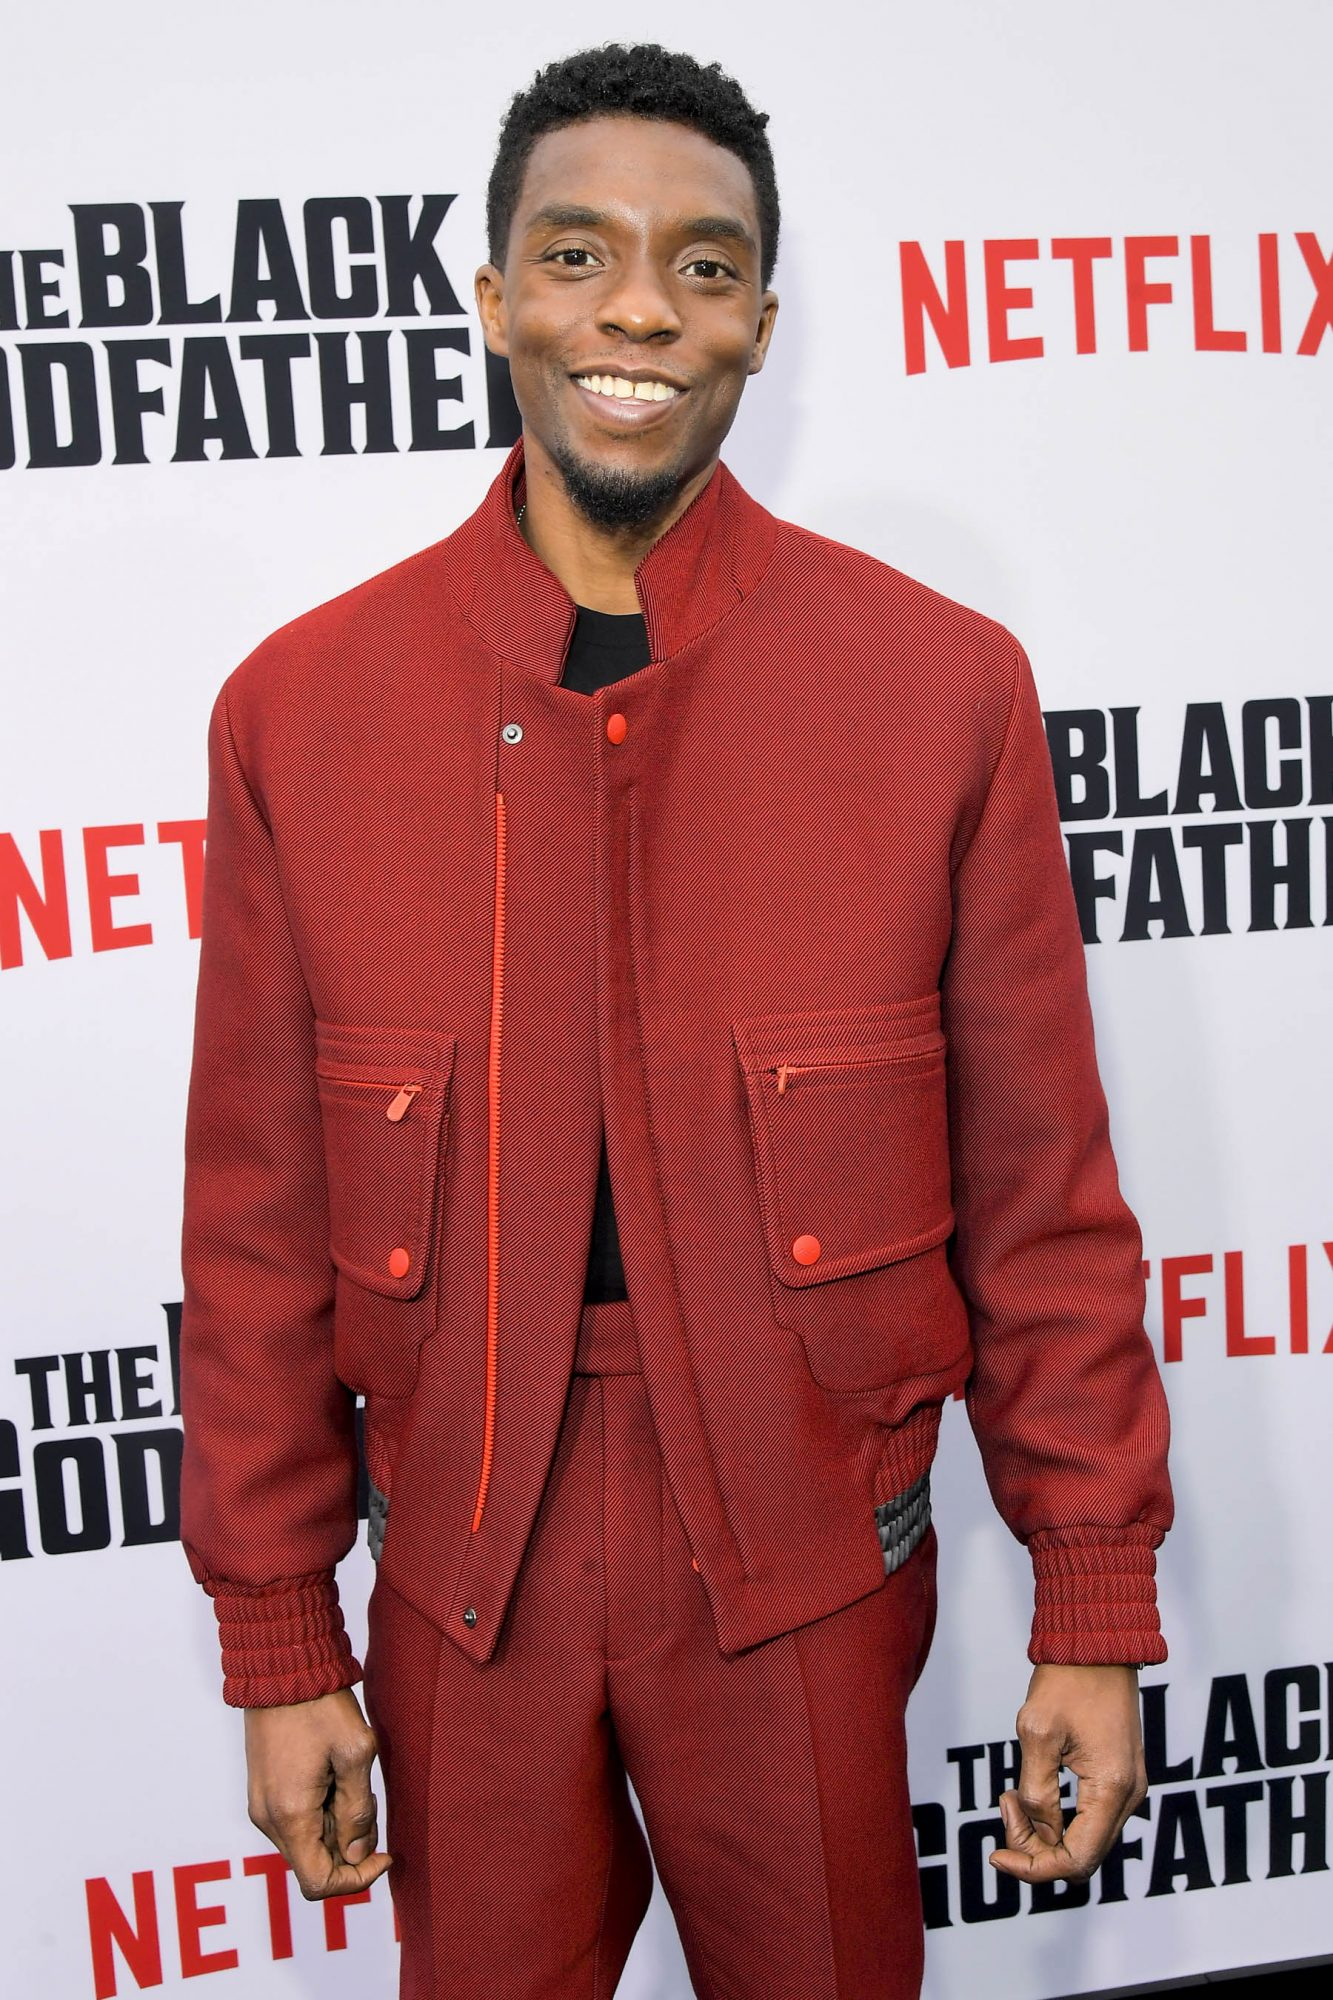 """LOS ANGELES, CALIFORNIA - JUNE 03: Chadwick Boseman attends Netflix world premiere of """"THE BLACK GODFATHER at the Paramount Theater on June 03, 2019 in Los Angeles, California. (Photo by Charley Gallay/Getty Images for Netflix)"""